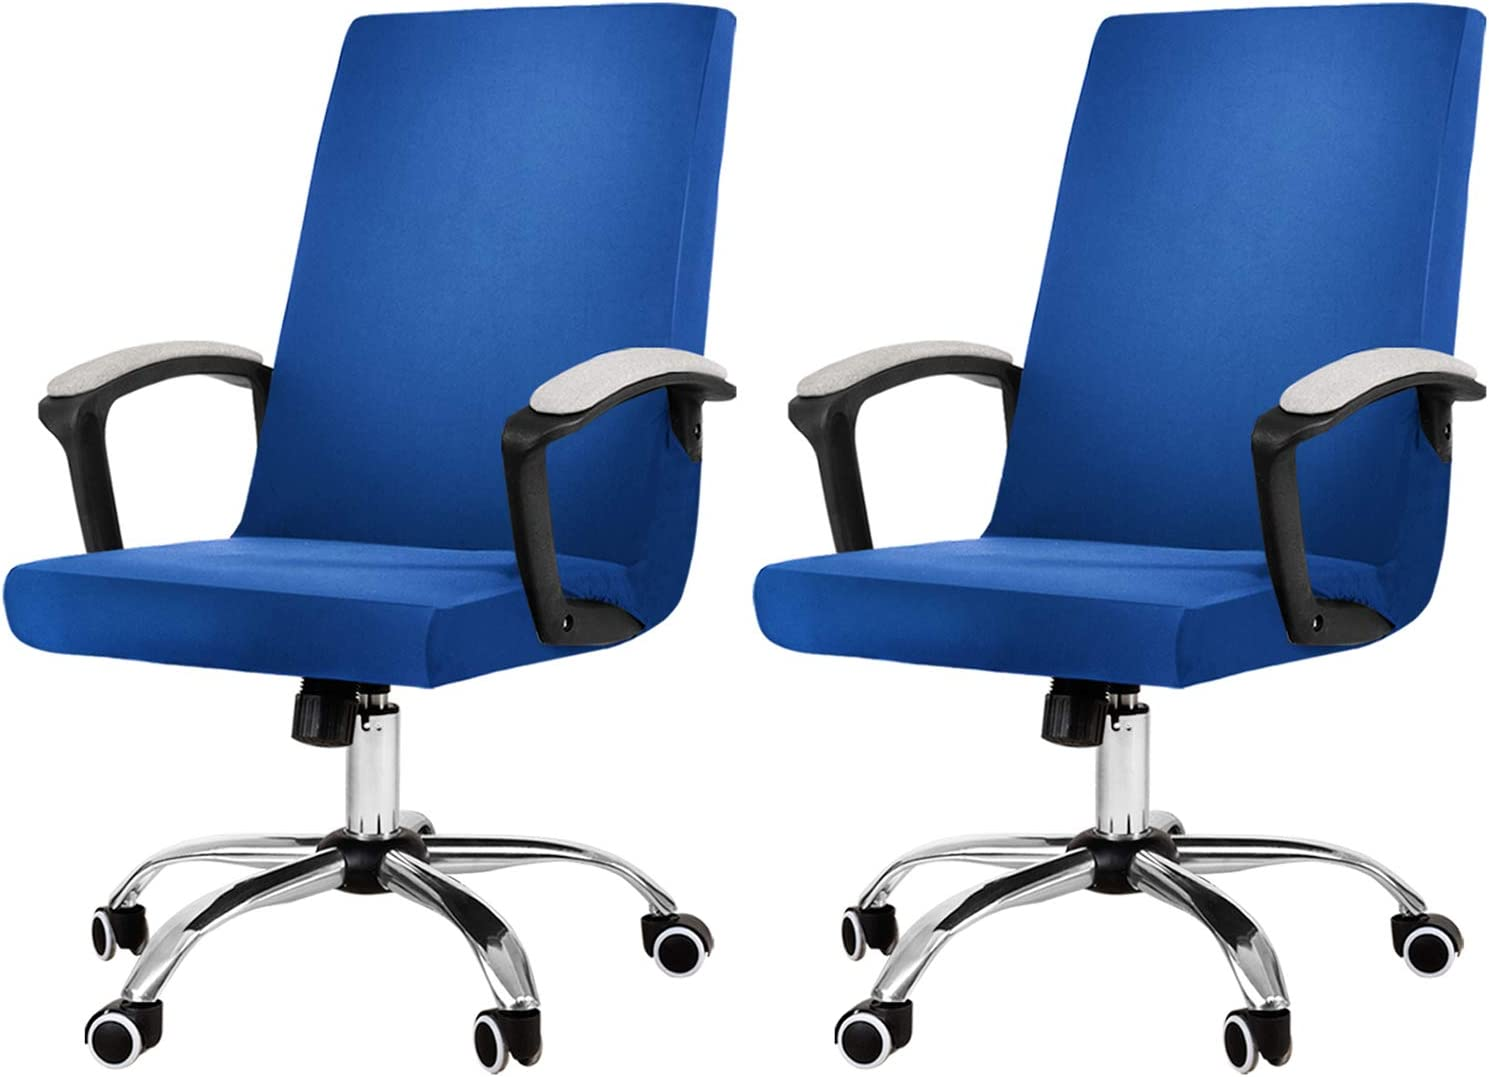 JIATER Stretchable Office Chair Cover Pack of 2 Computer Chair Slipcovers Universal Boss Chair Seat Covers Modern High Back Chair Slip Cover for Leather Desk Chair (2, Royal Blue)